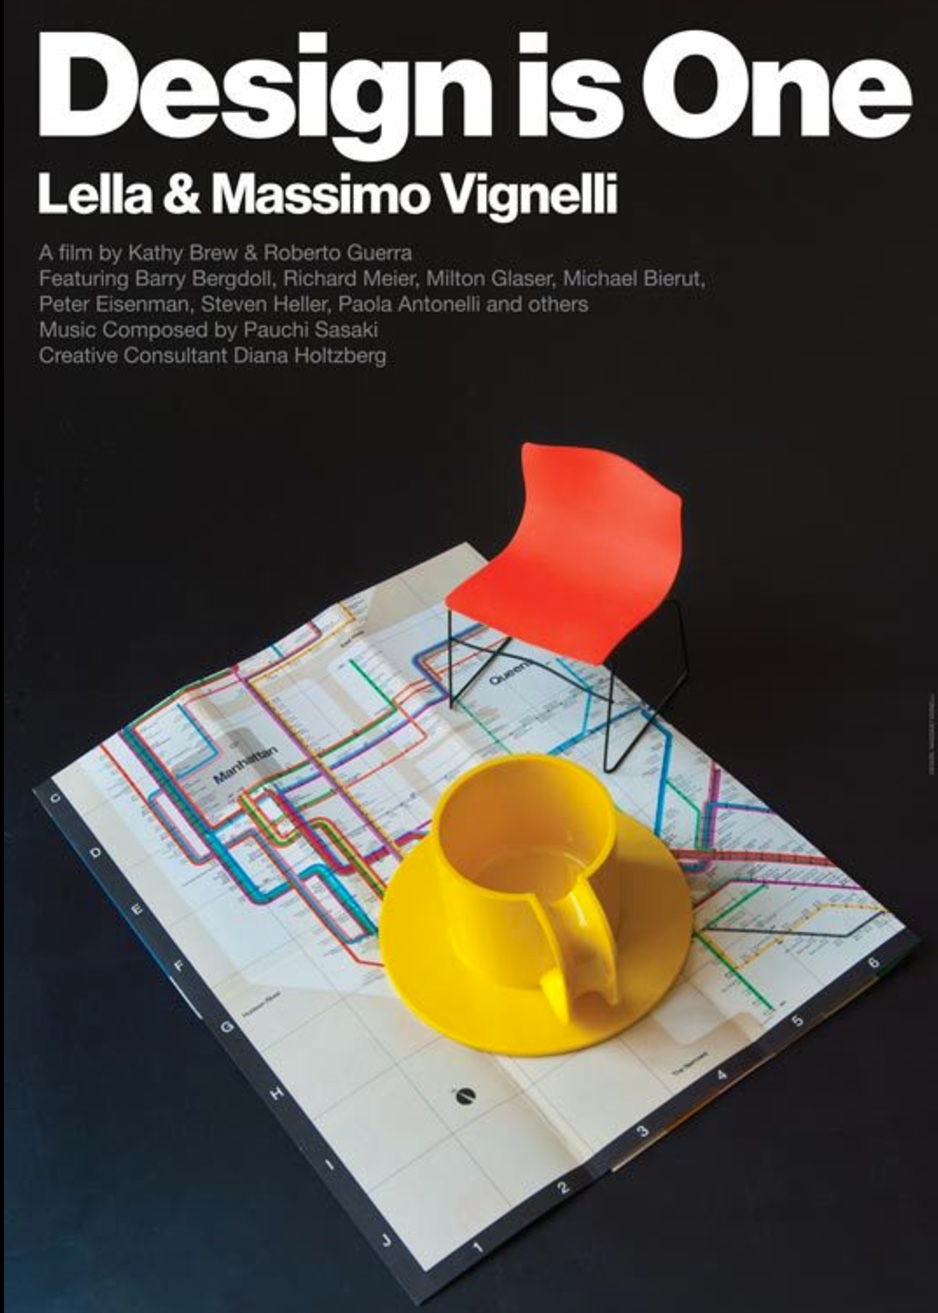 Design is One: Lella & Massimo Vignelli - 2012, USA, 90 min, in EnglishMassimo and Lella Vignelli are among the world's most influential designers and cover such a broad spectrum that one could say the Vignelli's are known by everybody, even those who don't know their names. Throughout their long career, their motto has been, 'If you can't find it, design it'.